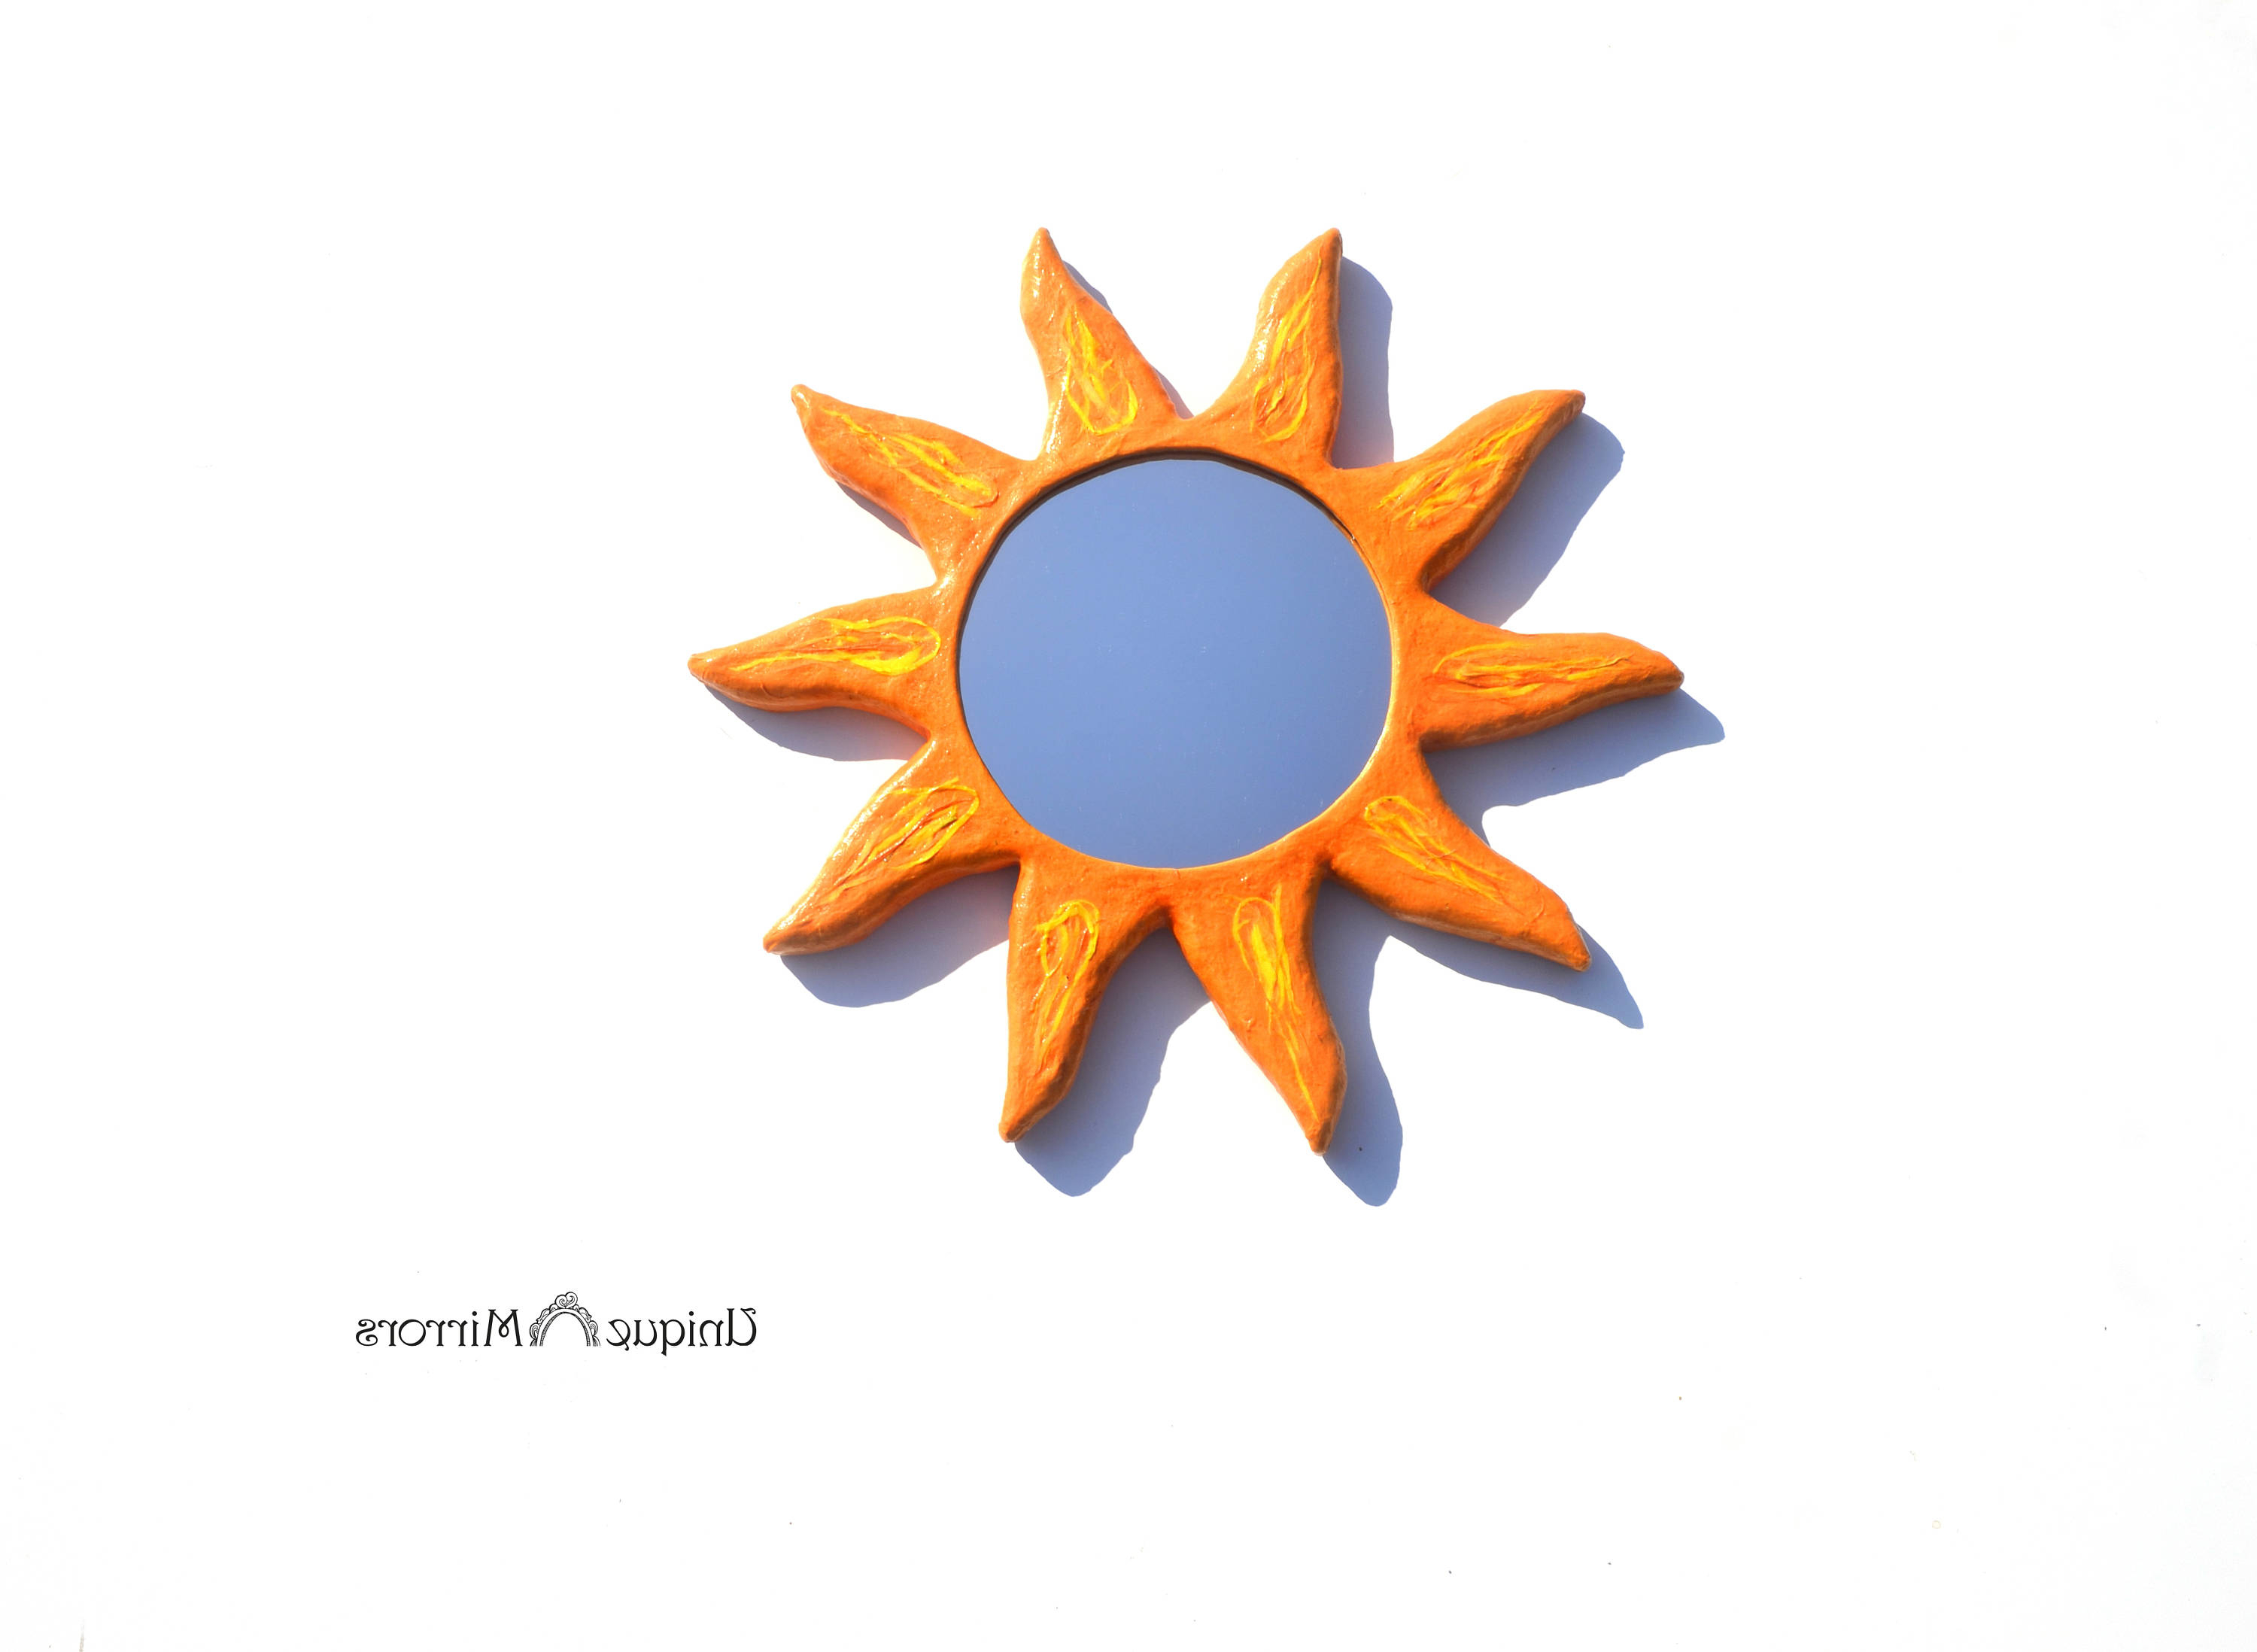 Well Liked Orange Sunburst Mirror, Decorative Wall Mirror, Round Mirror, Wall Hanging Mirror, Home & Office Decor, Mirror For Walls, Hippie Home Mirror Regarding Orange Wall Mirrors (View 9 of 20)